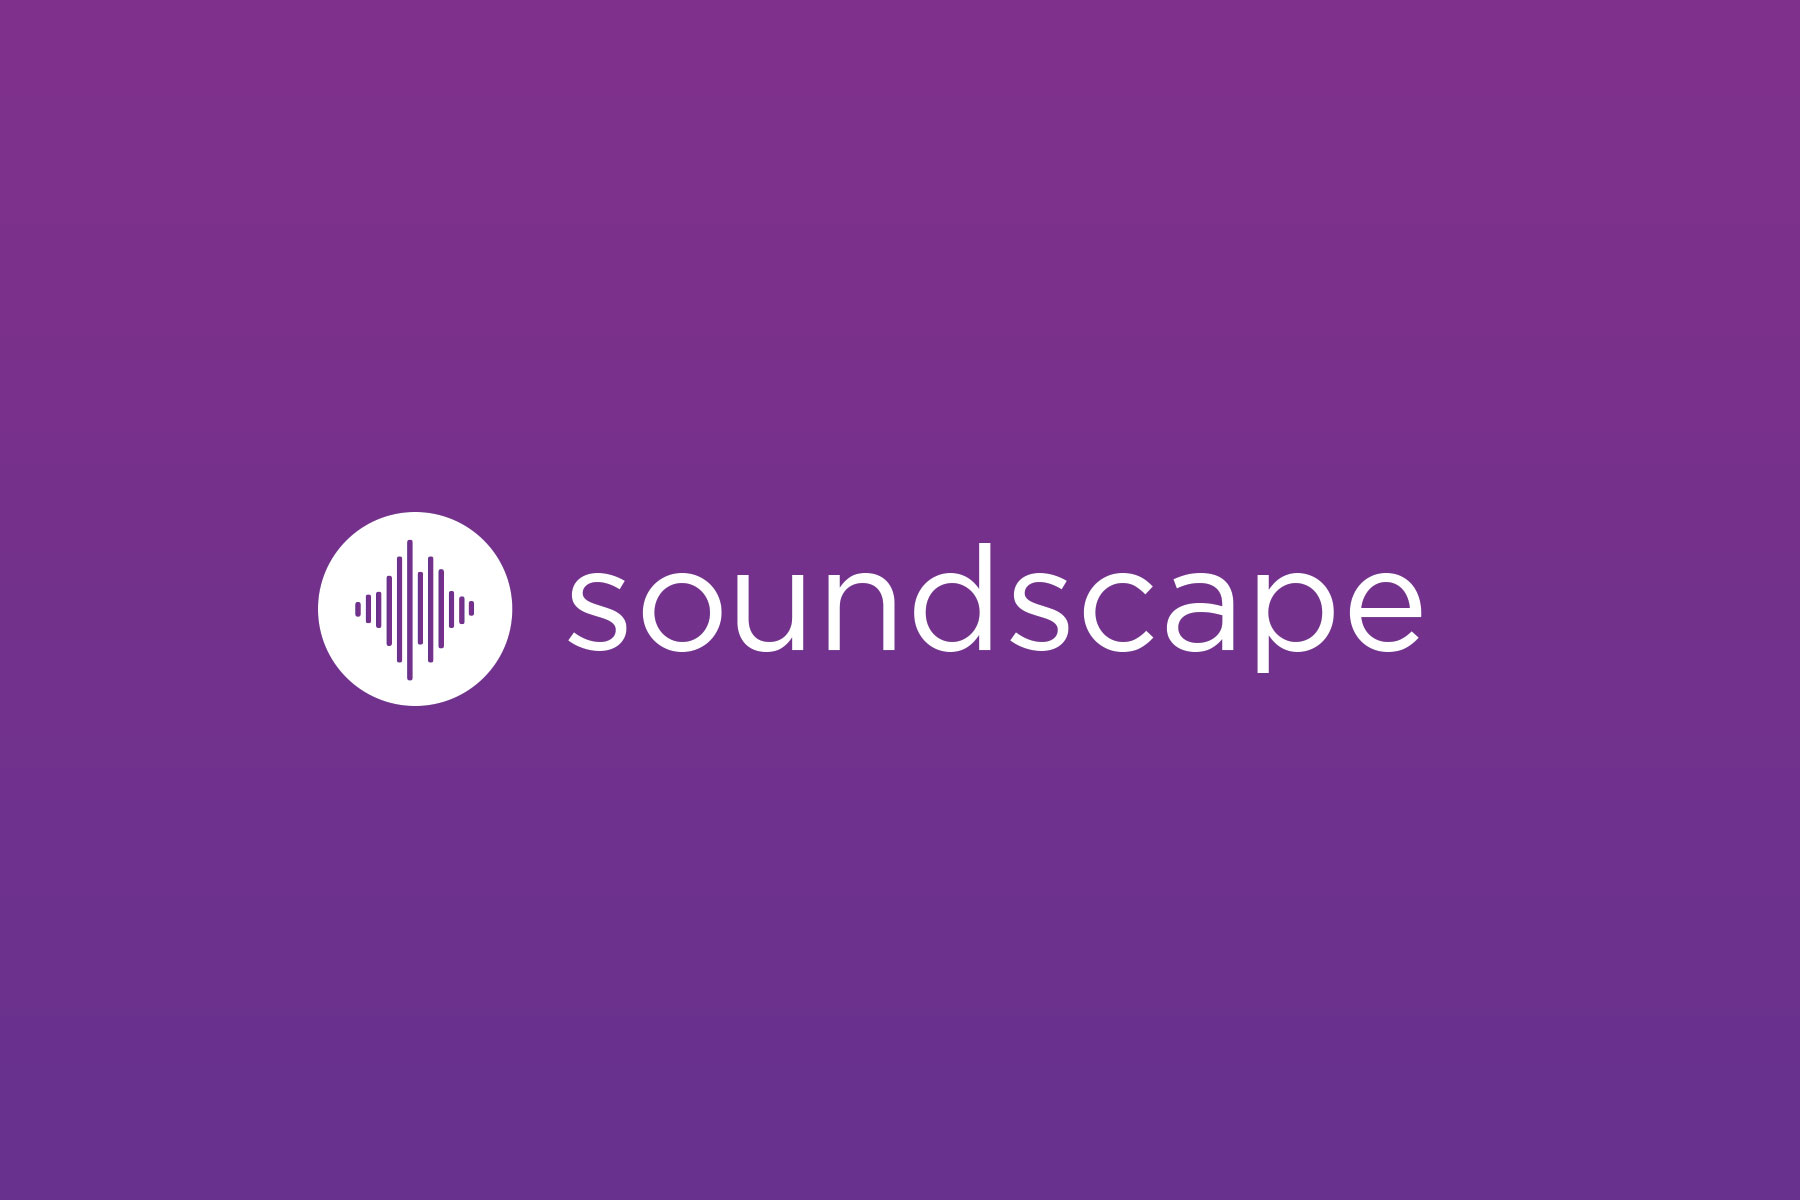 soundscape-logo-full